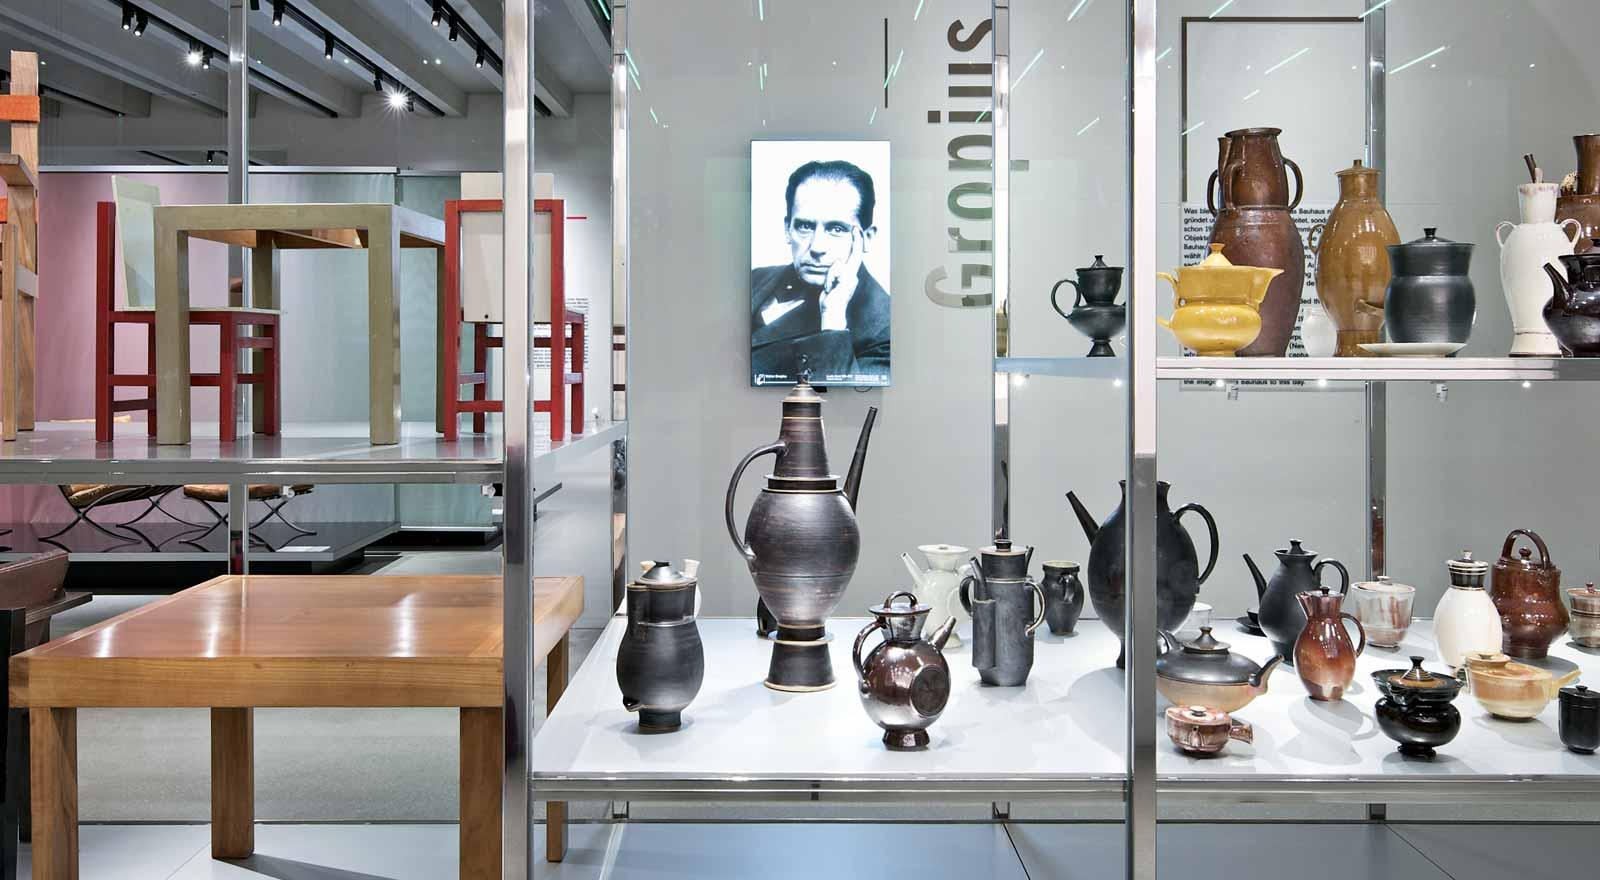 The Walter Gropius Collection